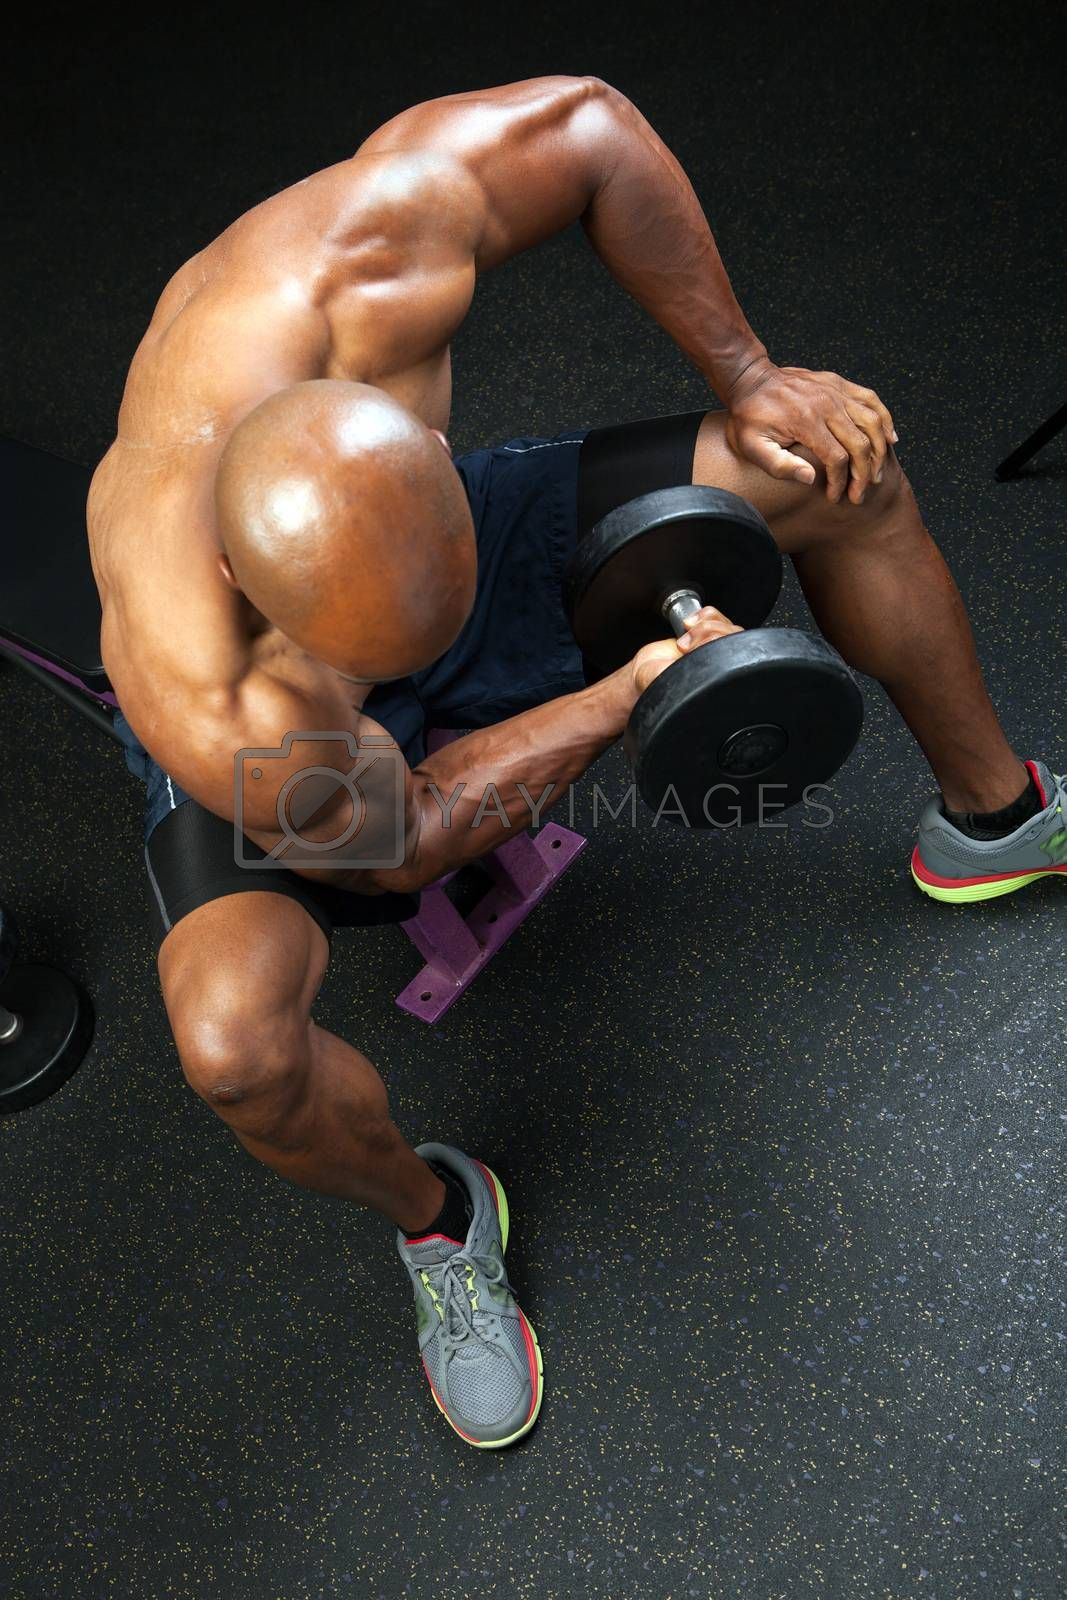 Toned and ripped lean muscle fitness man lifting weights on a curling bar.